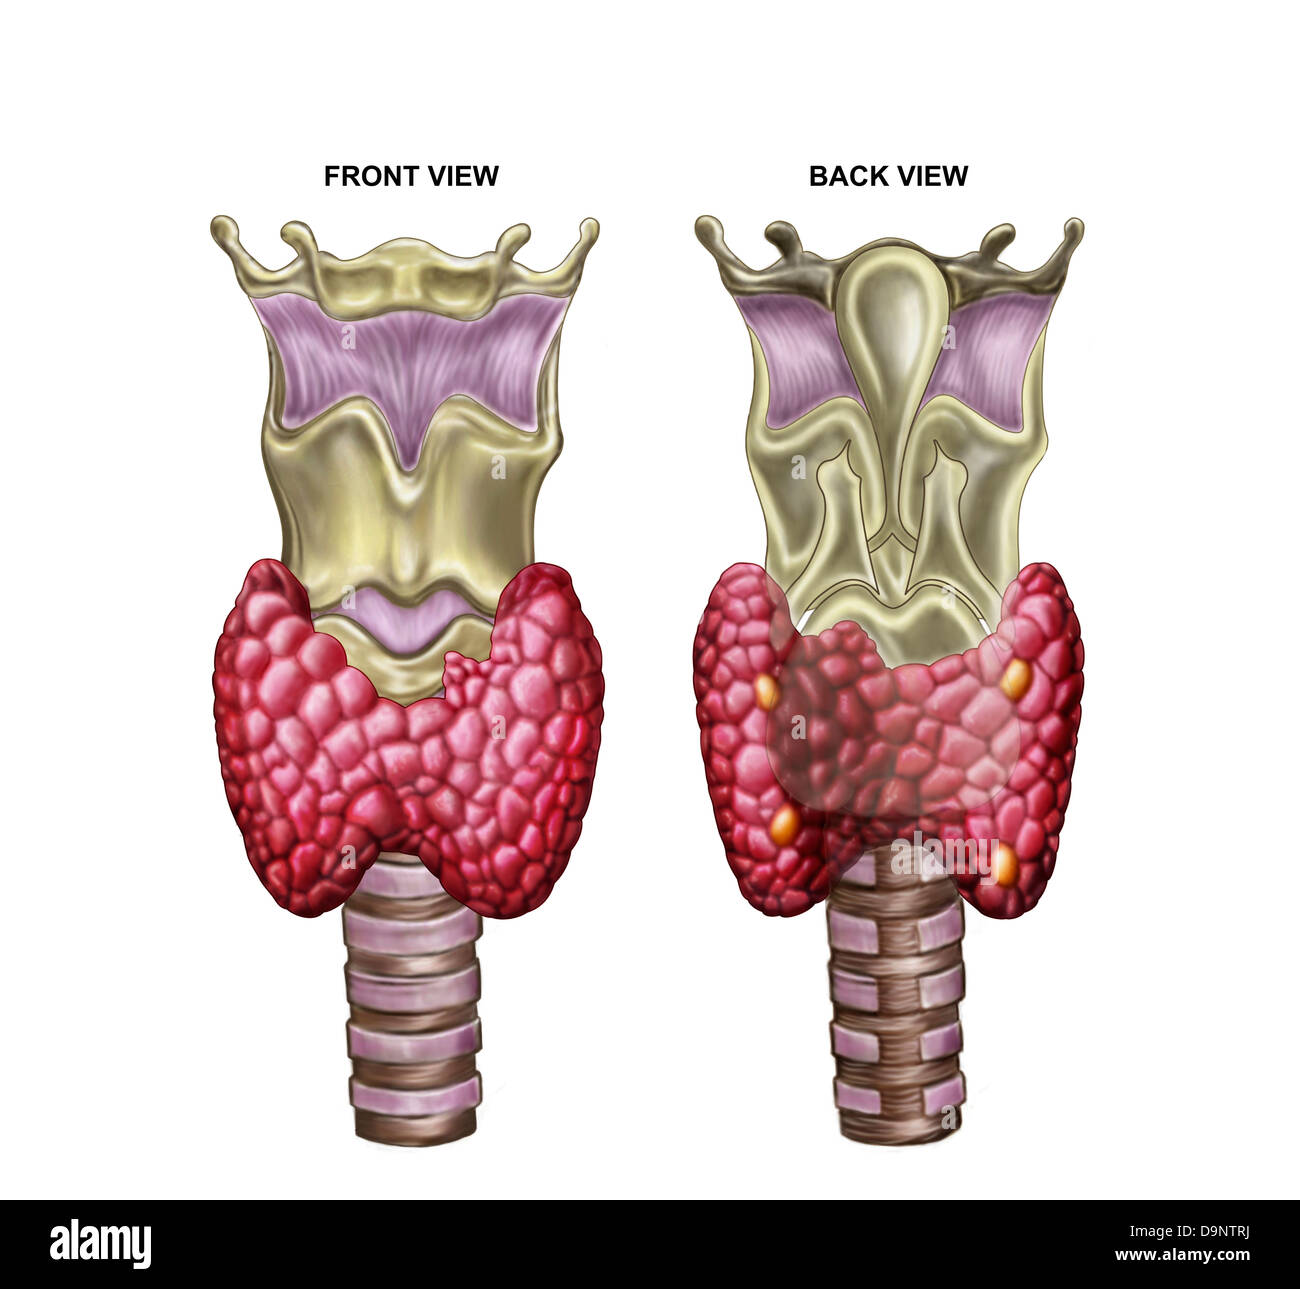 Anatomy of thyroid gland with larynx & cartilage. - Stock Image